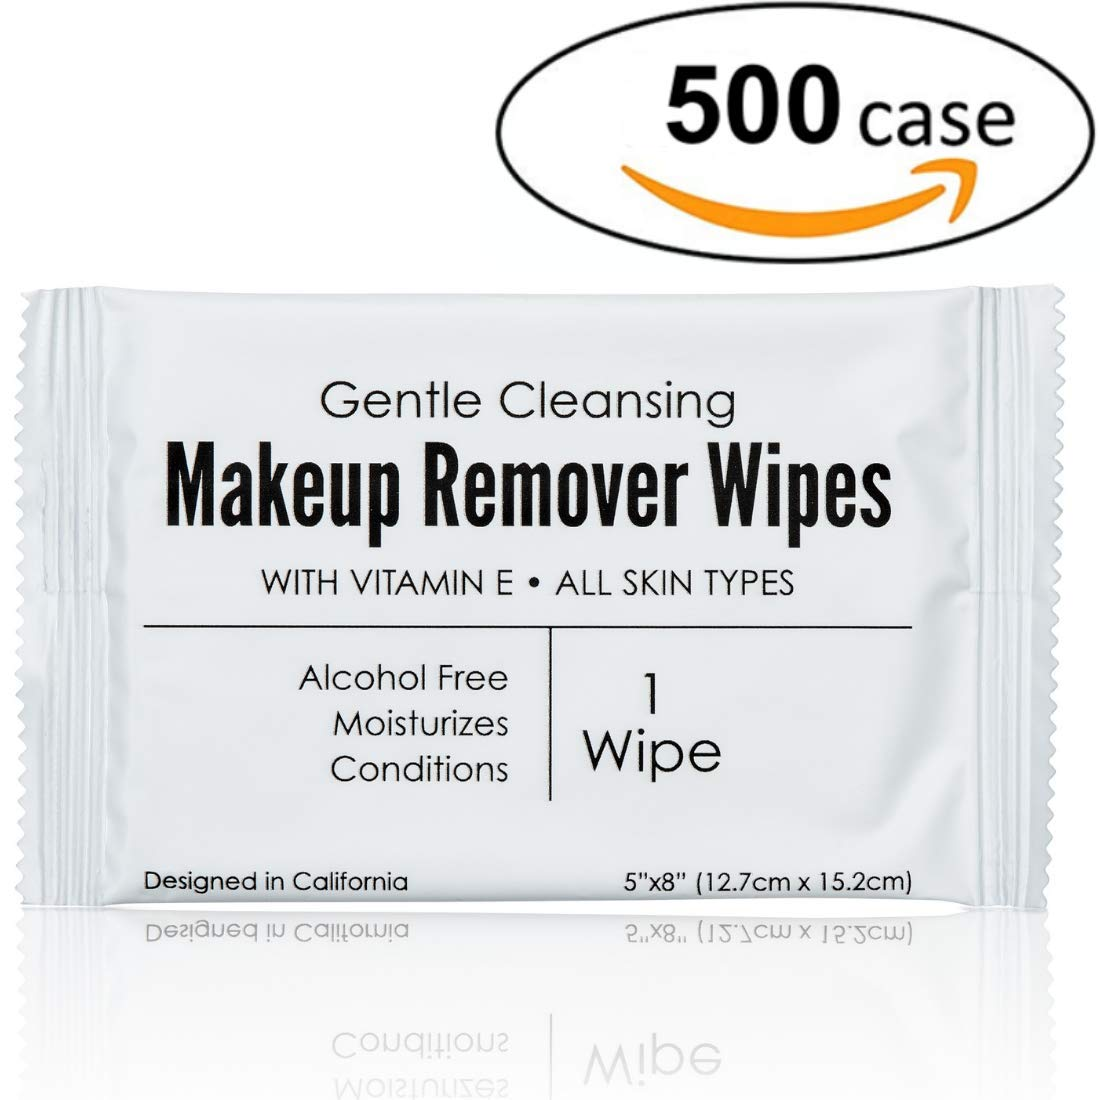 World Amenities - Bulk Makeup Remover Wipes | 500 Count $0.09 unit | Individually Wrapped, Gentle Cleansing, Alcohol Free - All Skin Types - Vitamin E - 100% Recyclable, Hotel Travel Size Toiletries